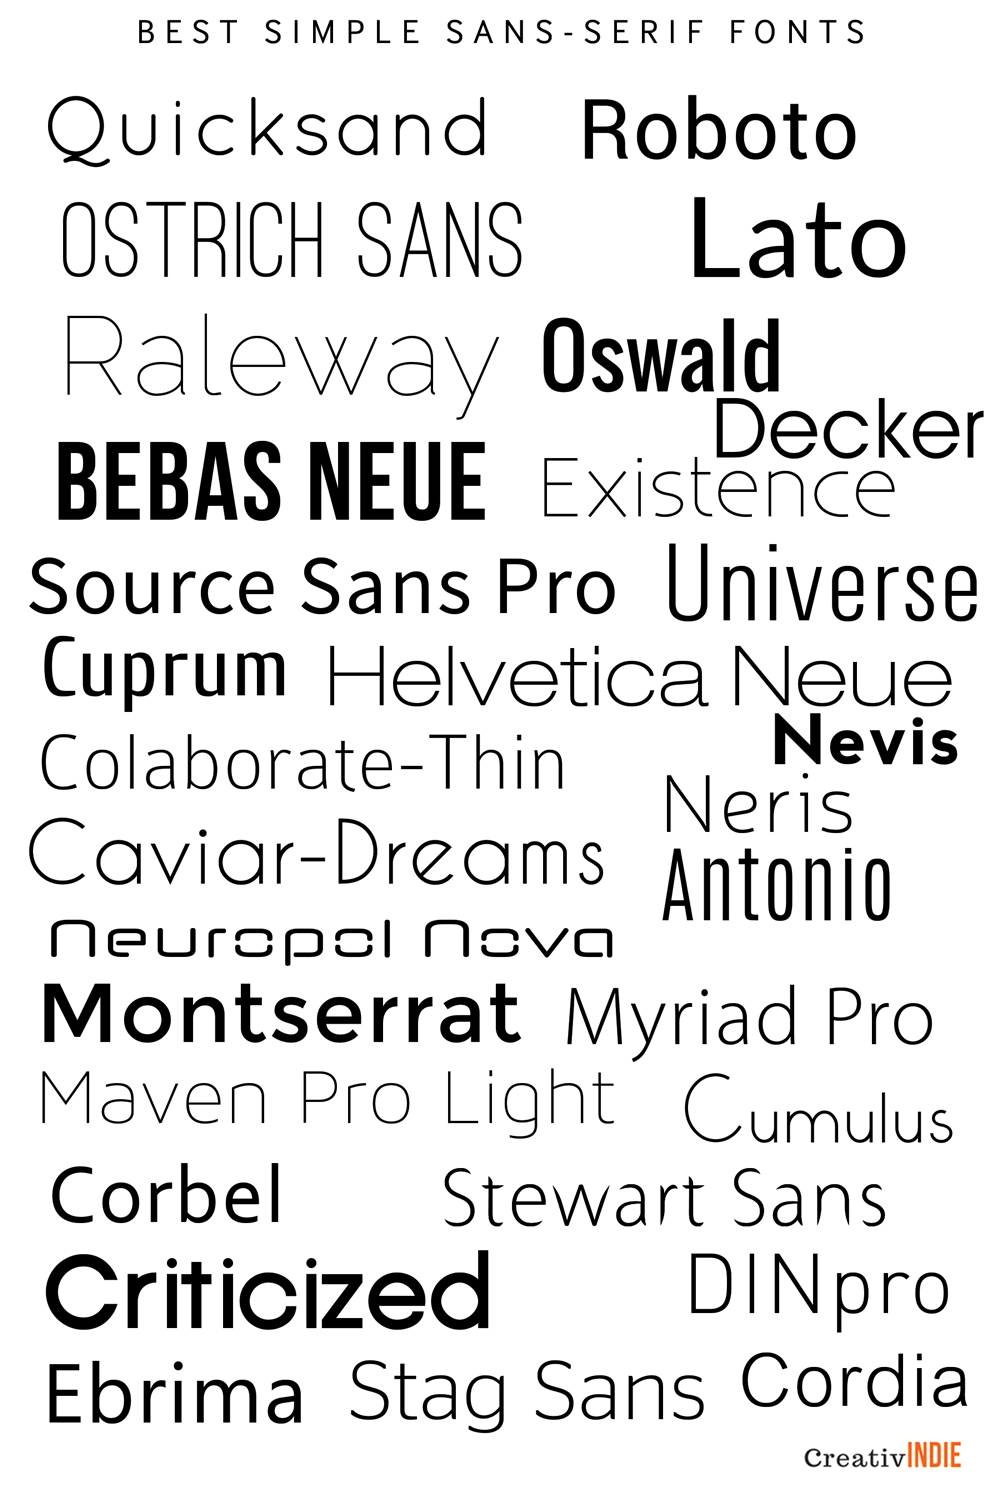 300 Fool Proof Fonts To Use For Your Book Cover Design An Epic